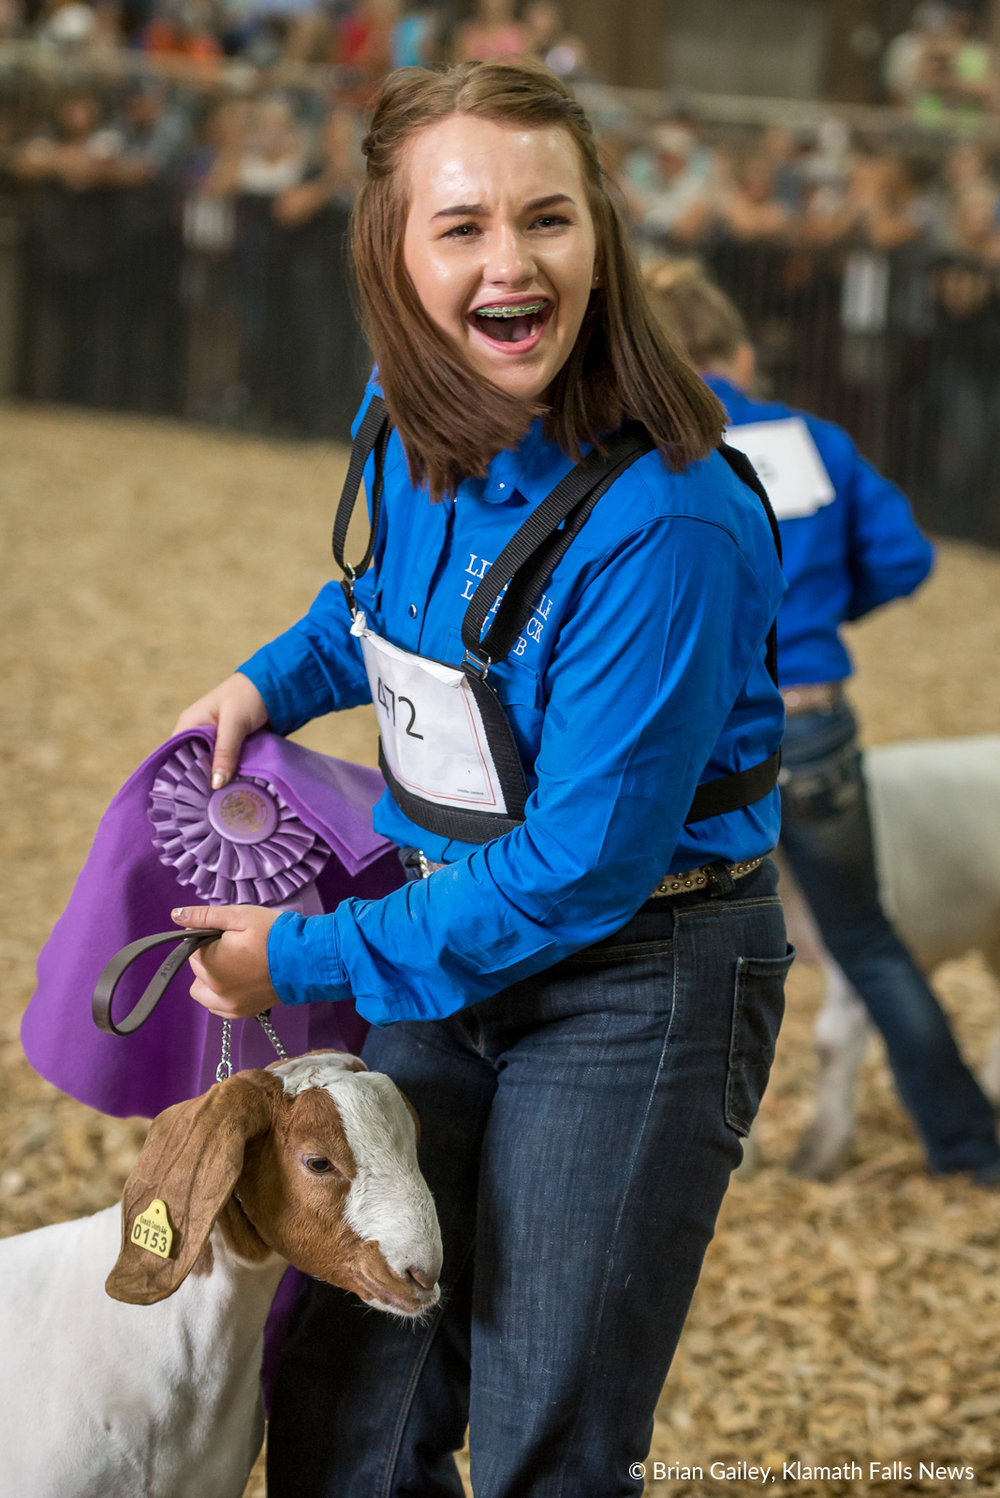 A participant is shocked to find out her goat is a Champion. August 3, 2018 (Brian Gailey)